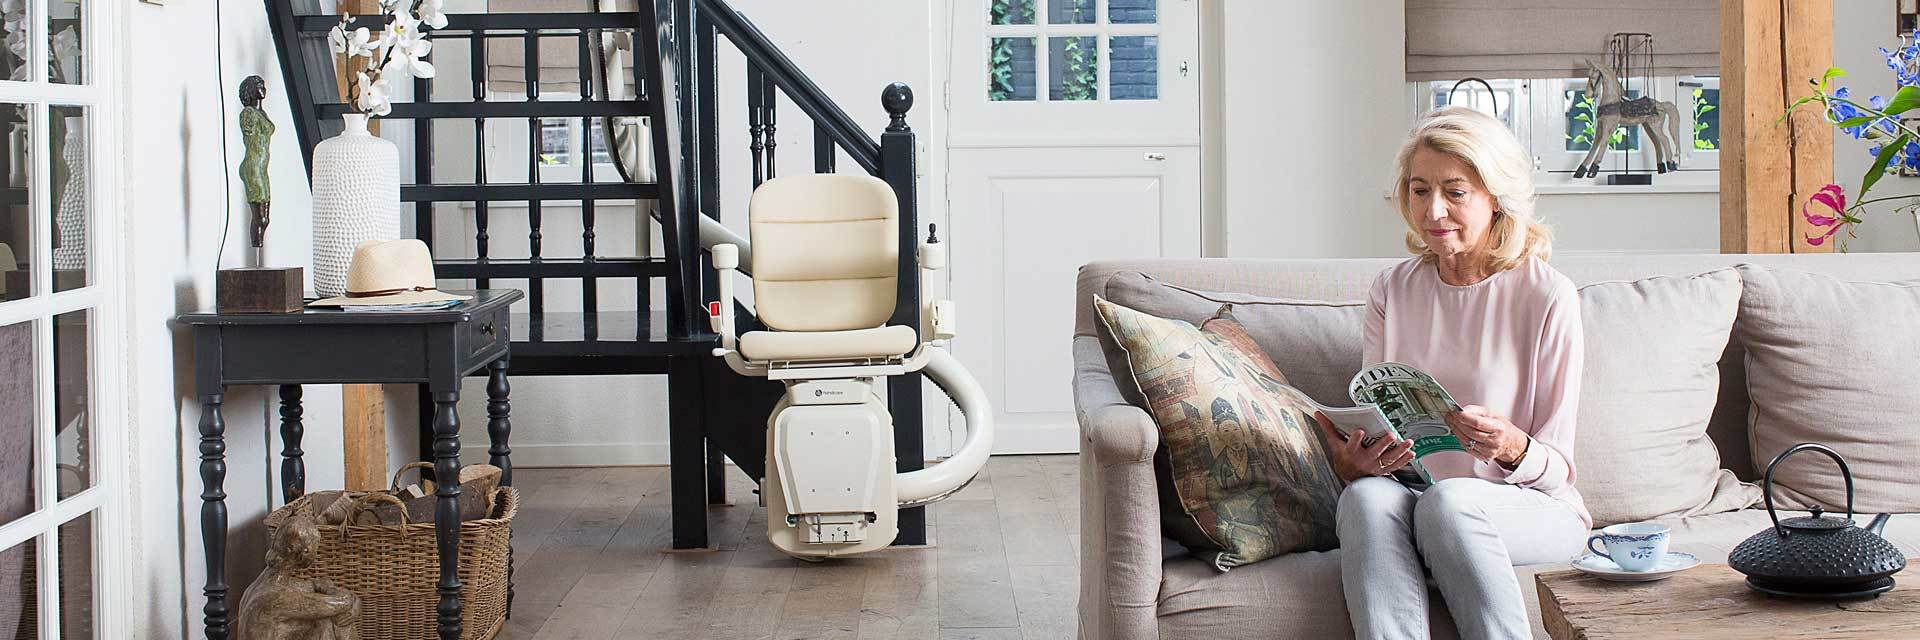 handicare custom curved stairchair